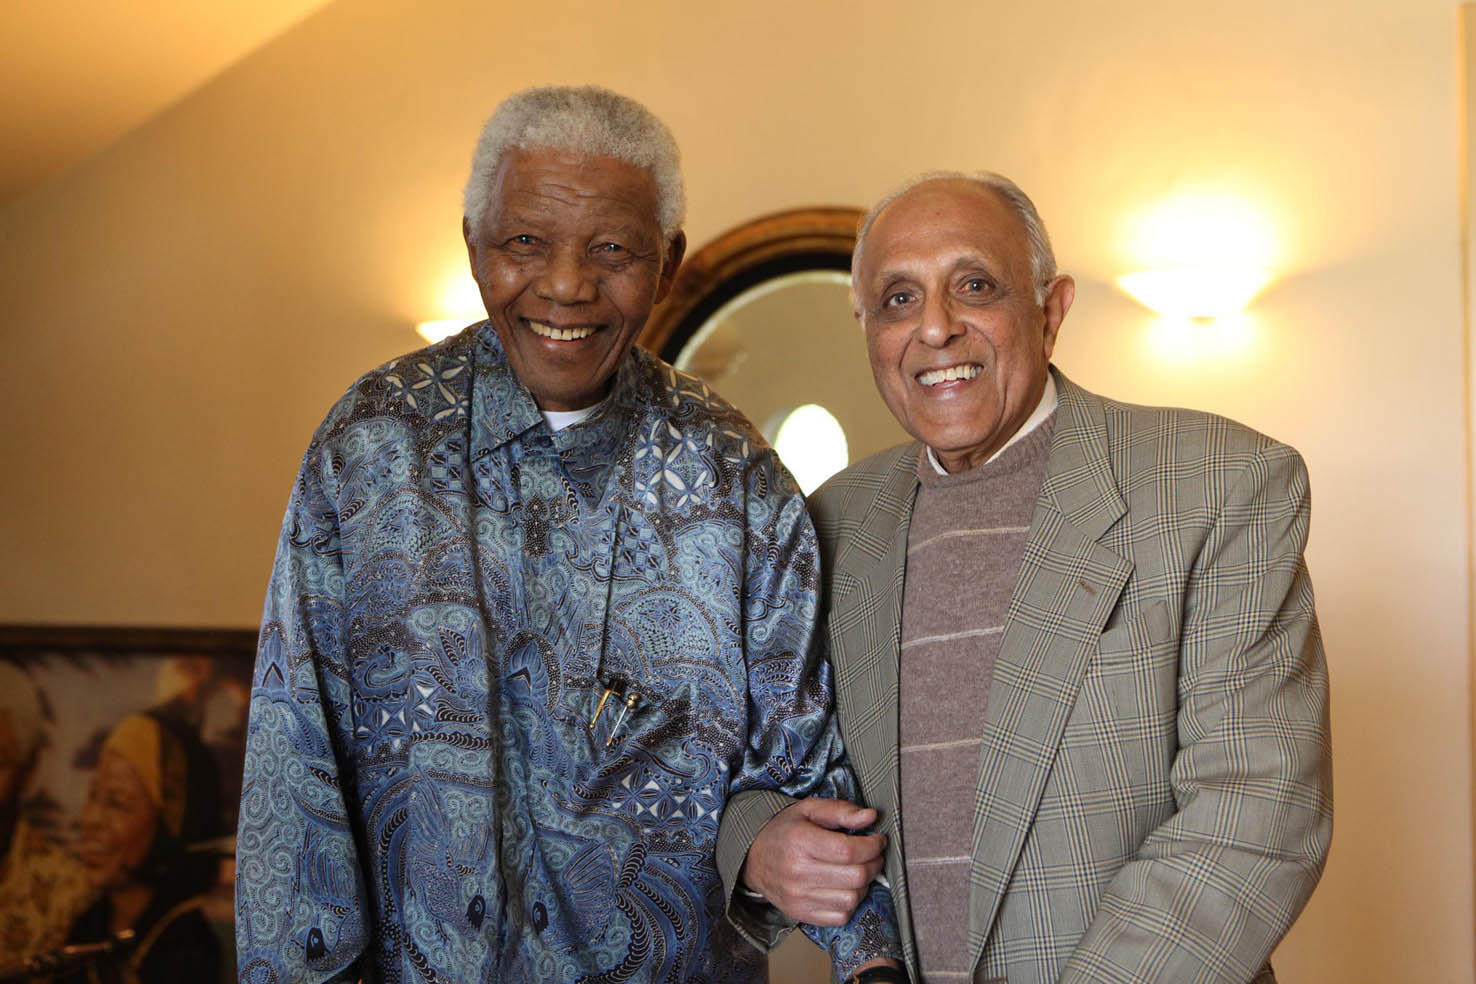 Photo_Web_AhmedKathrada_080713